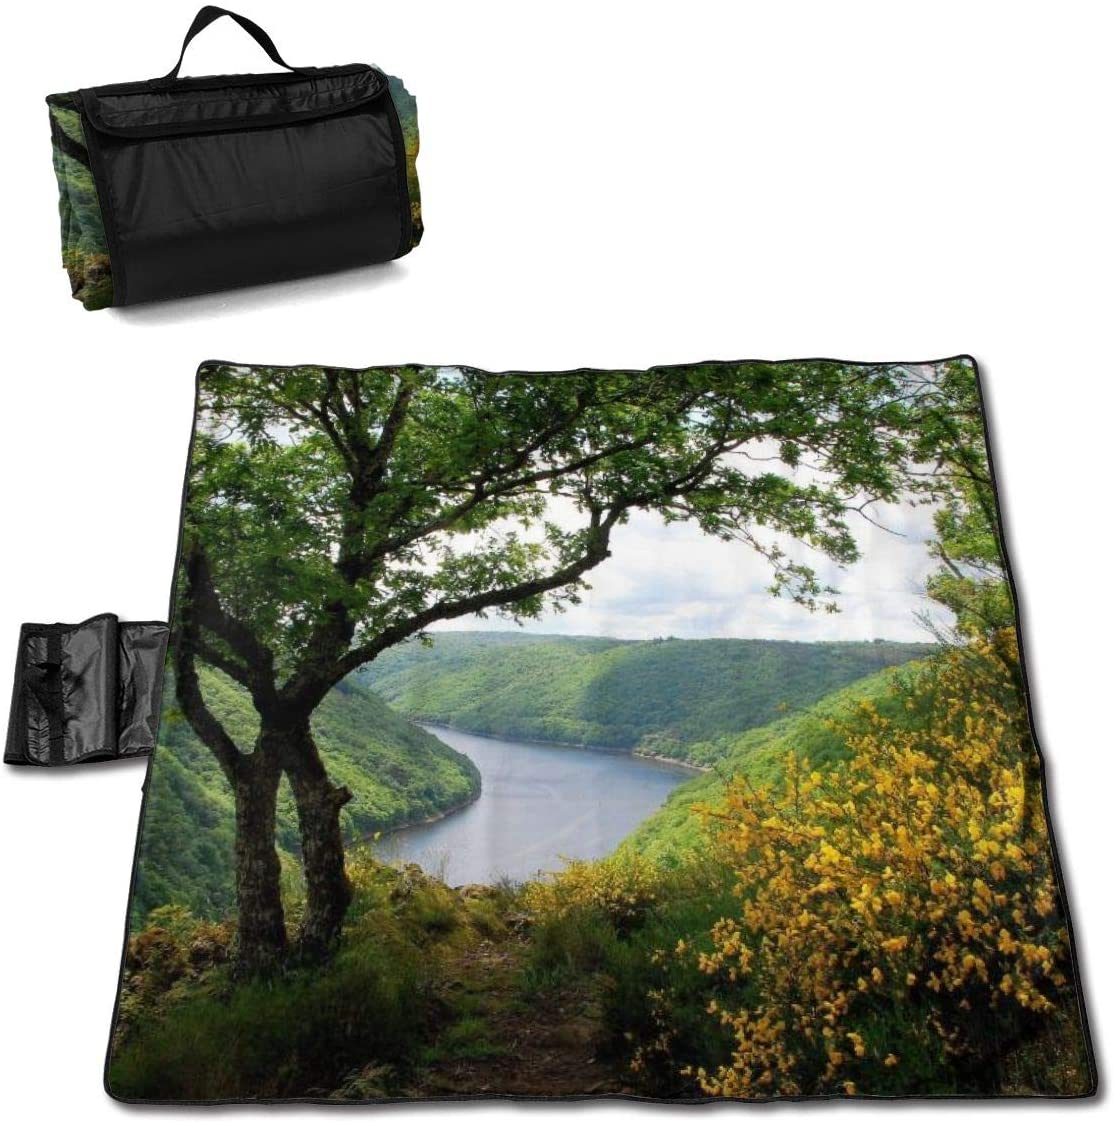 Extra Large Picnic Outdoor Blanket Dual Layers Water-Resistant Nature (456) Handy Mat Tote